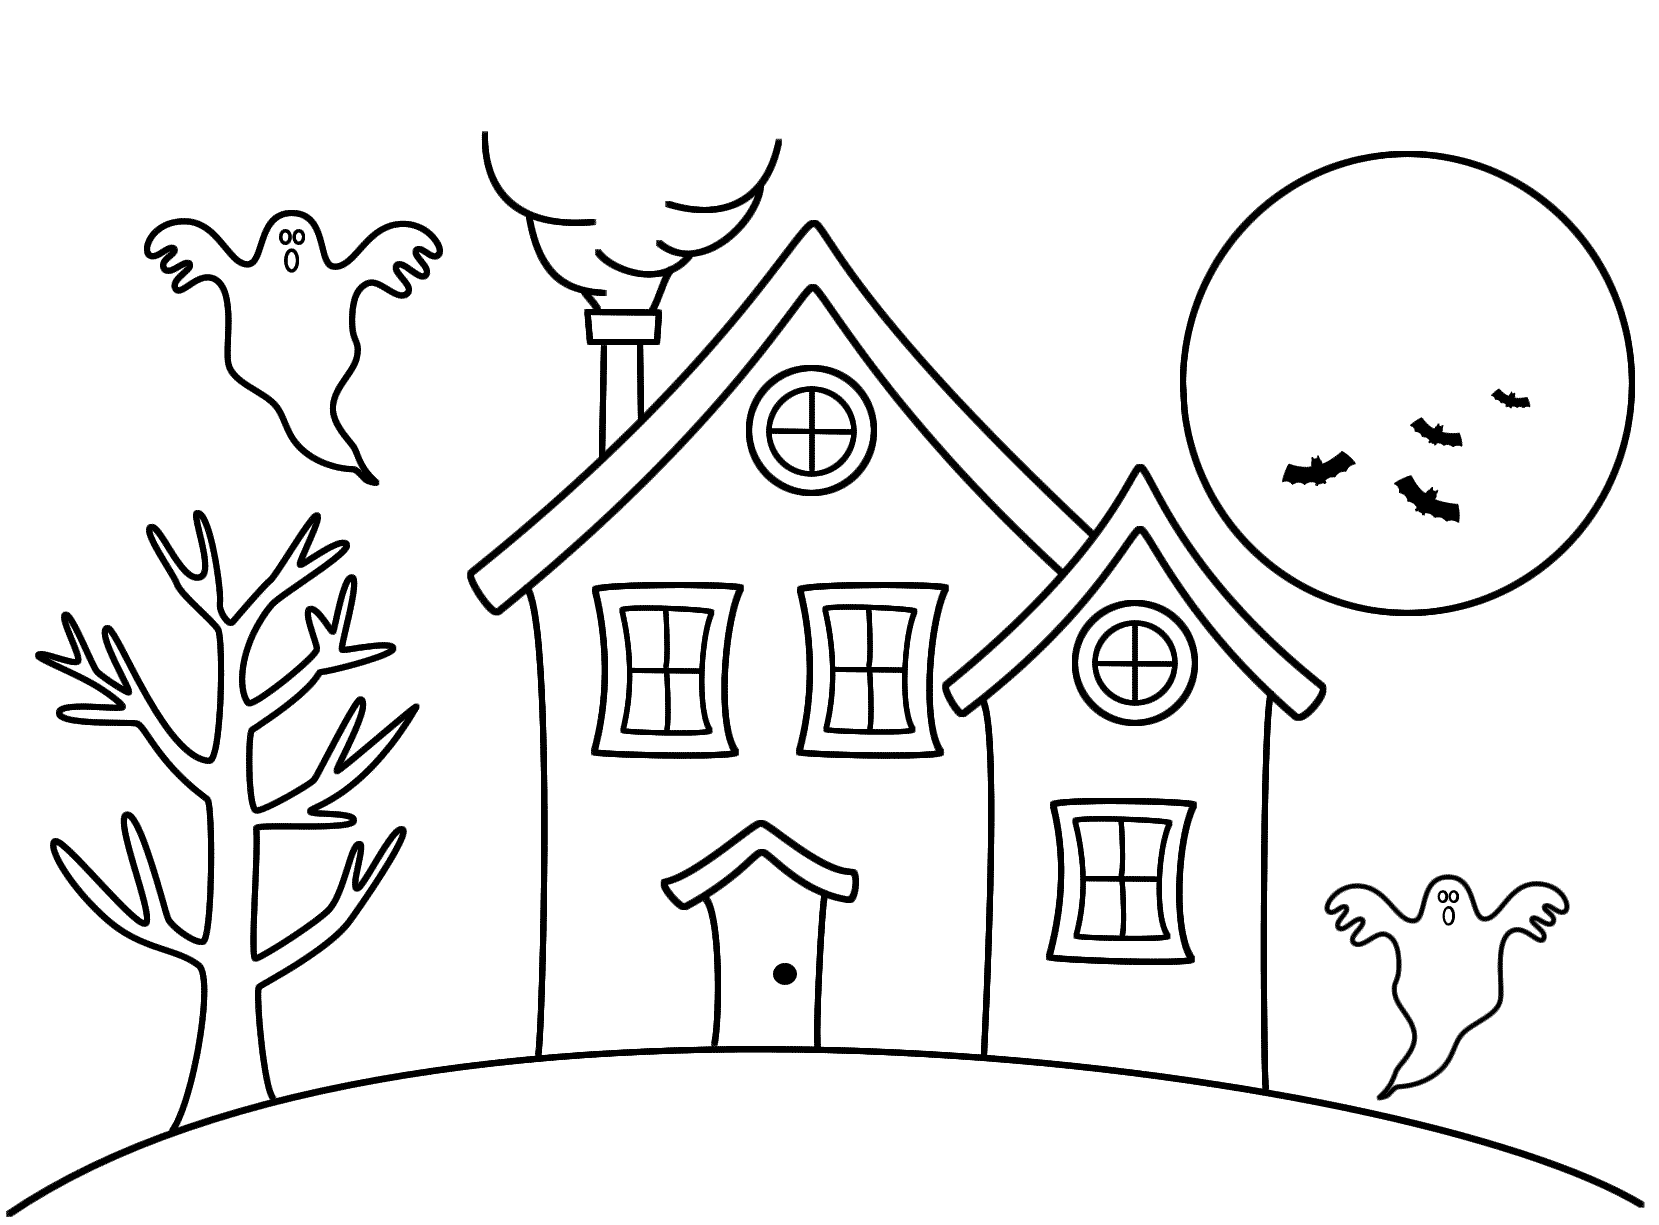 haunted house coloring pages printables halloween haunted house coloring pages getcoloringpagescom printables pages house haunted coloring